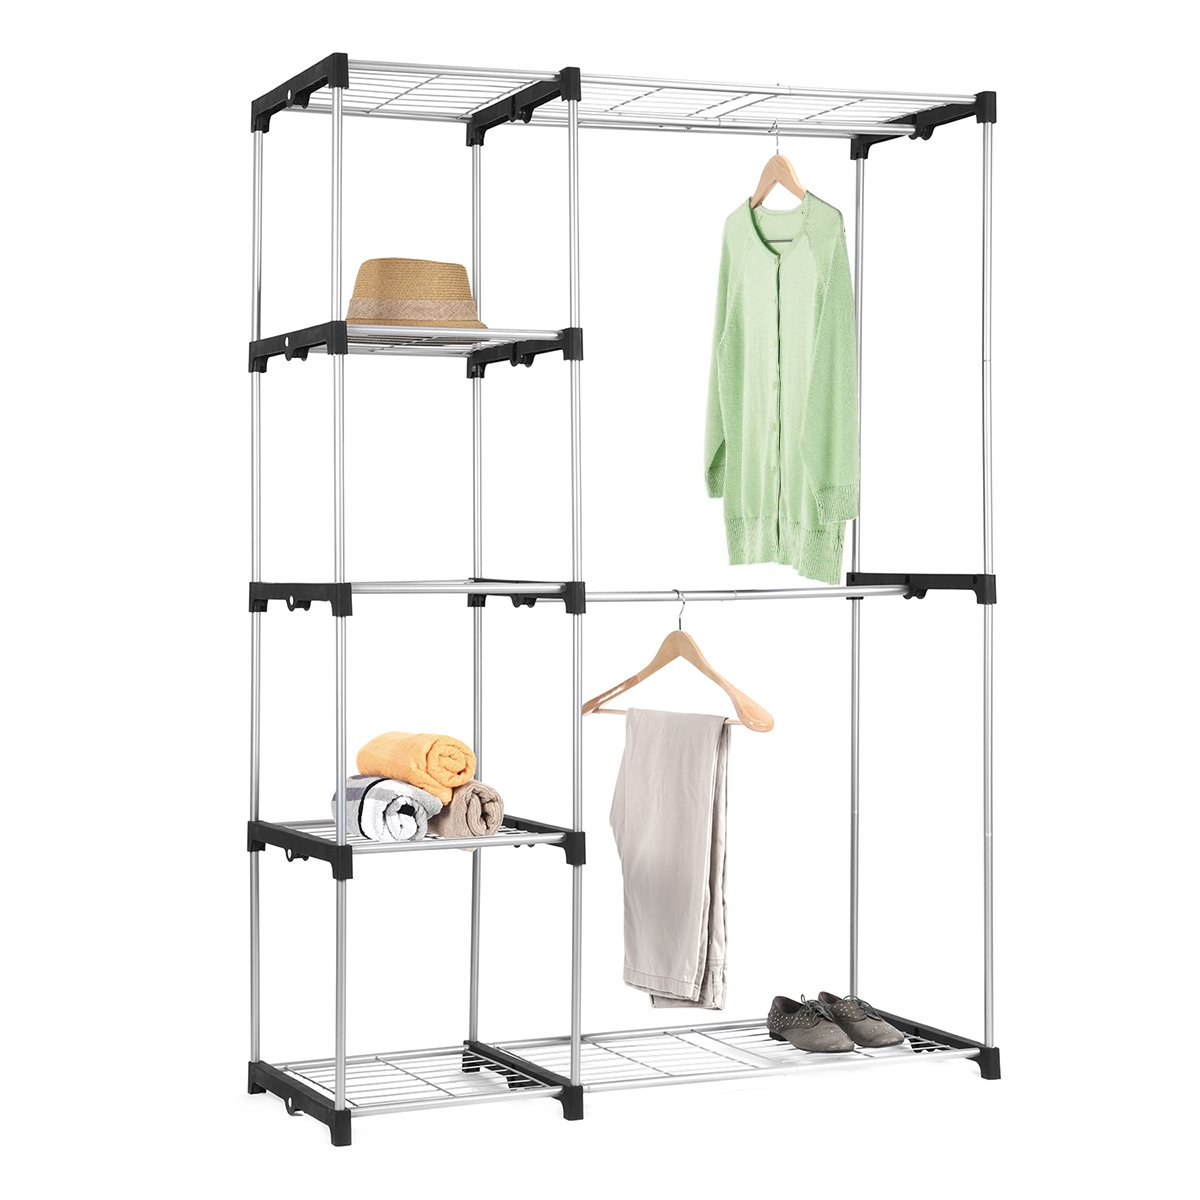 Double Rod Closet, MaidMAX Free-standing Sliver Garment Rack for Gift